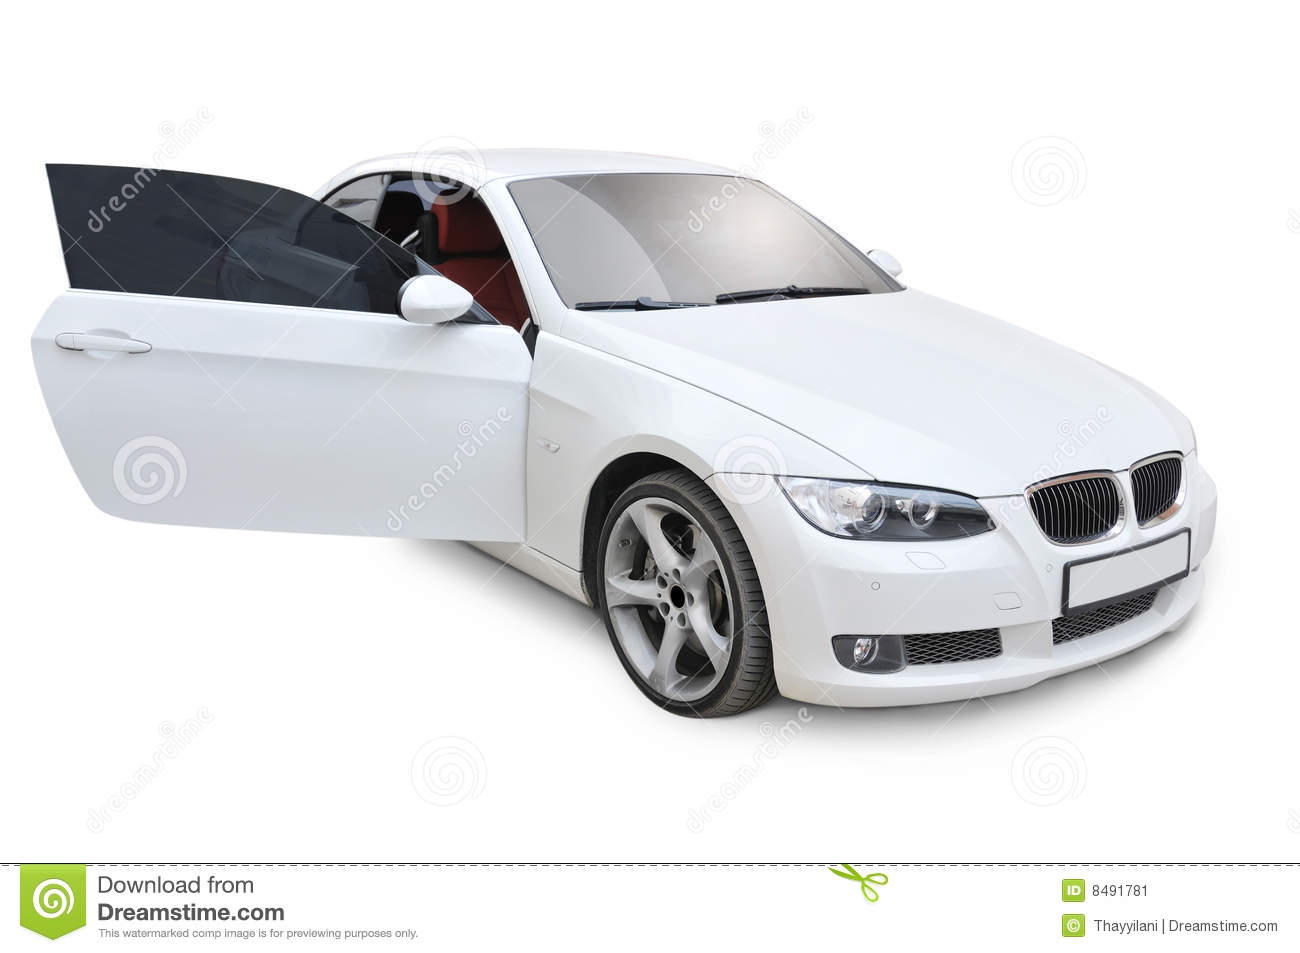 Bmw 335i Right Door Open Stock Image Image Of Front Cars 8491781